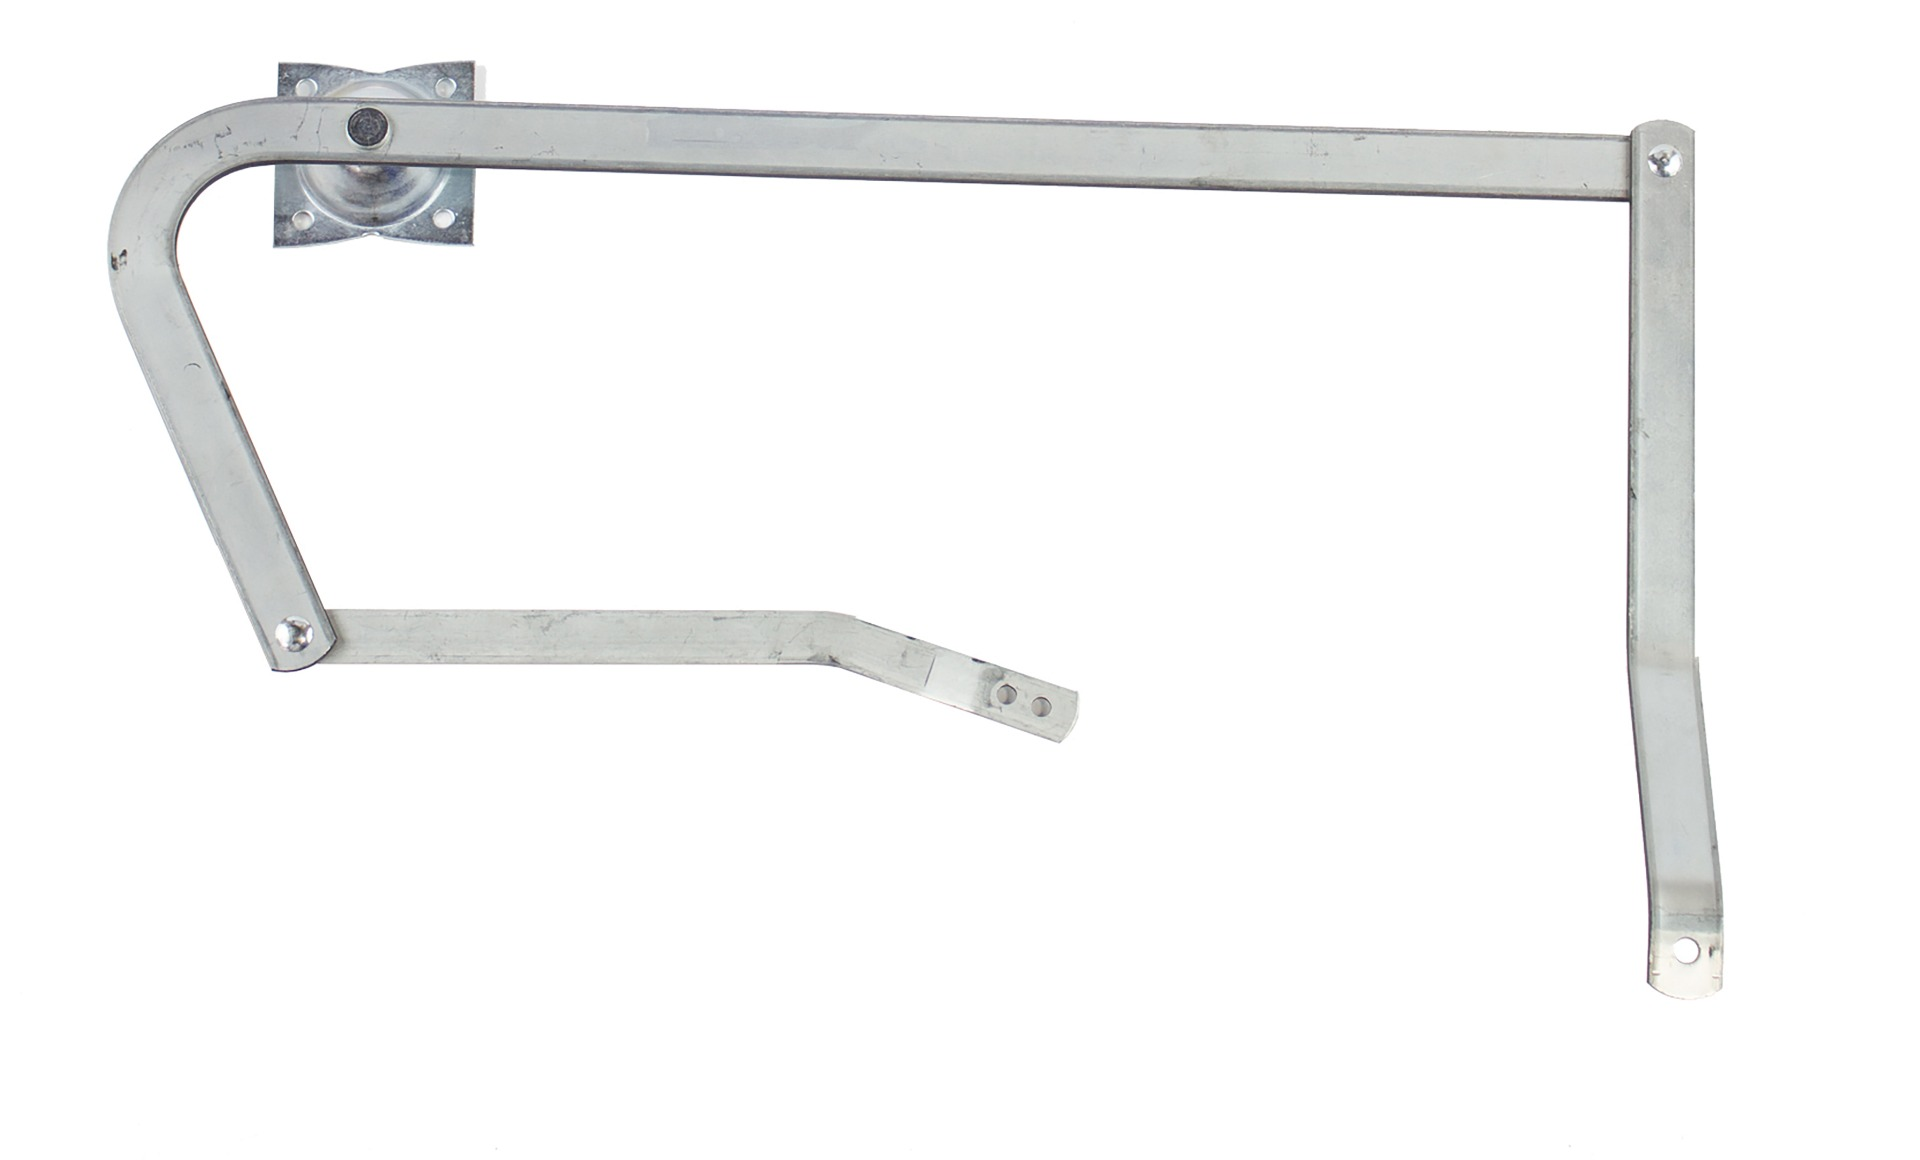 Parts Accessories Enter Your Ladder Model In The Search Box To Find Compatible Parts And Accessories Louisville Ladder